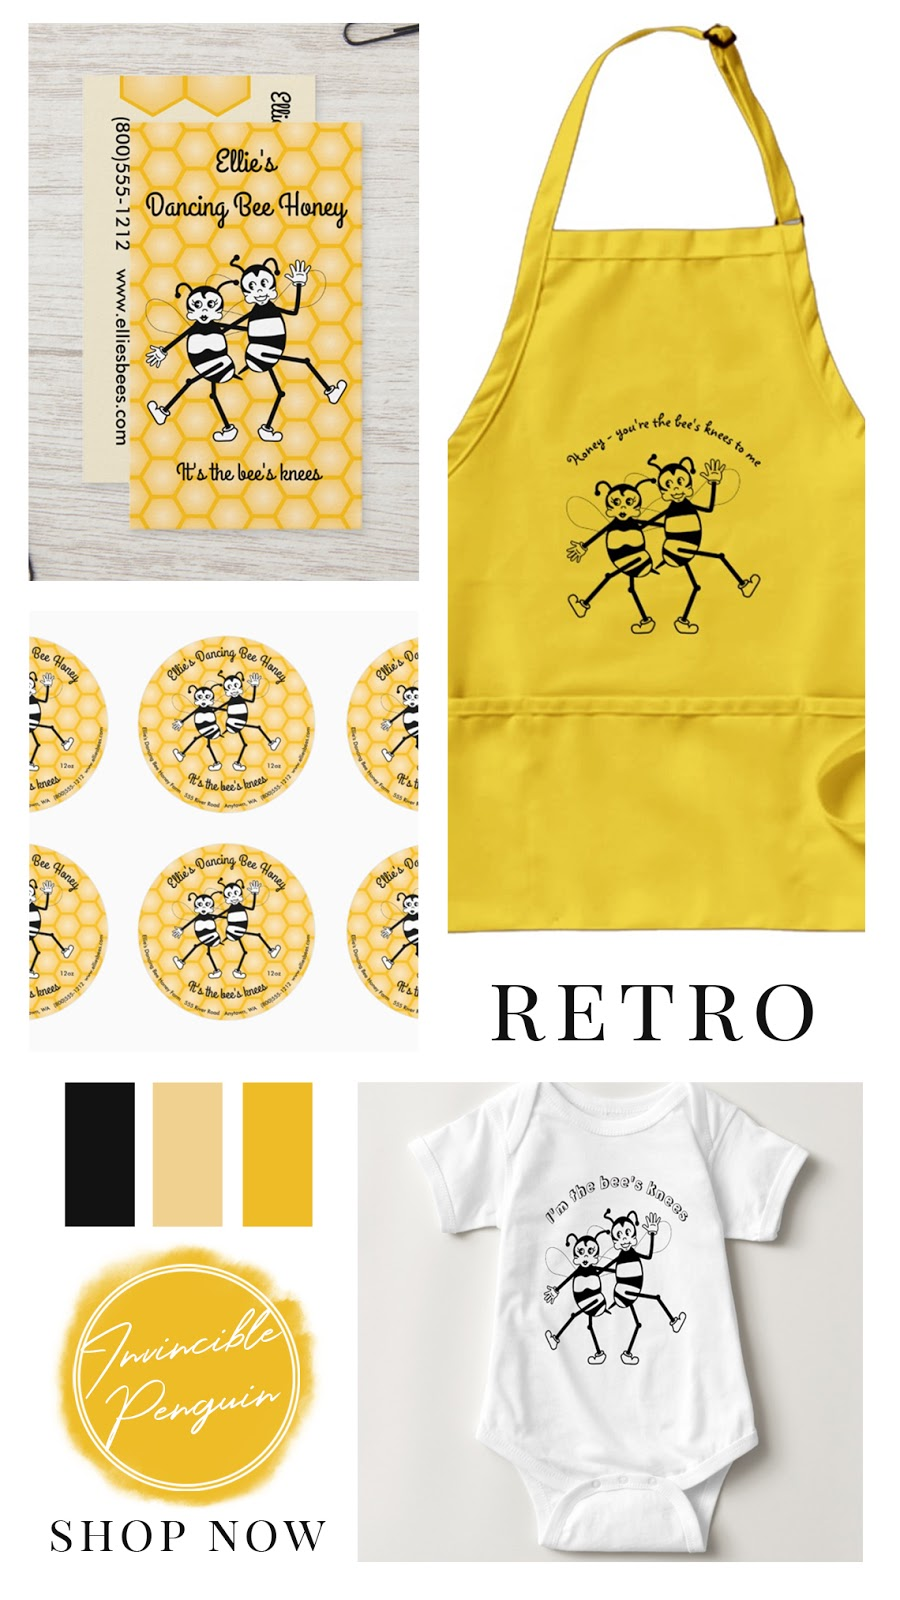 Retro dancing black and white bees and yellow honeycomb patterned background. On kitchen aprons, round stickers, business cards, and apparel. It's the bees knees! In black amber and yellow color palette.